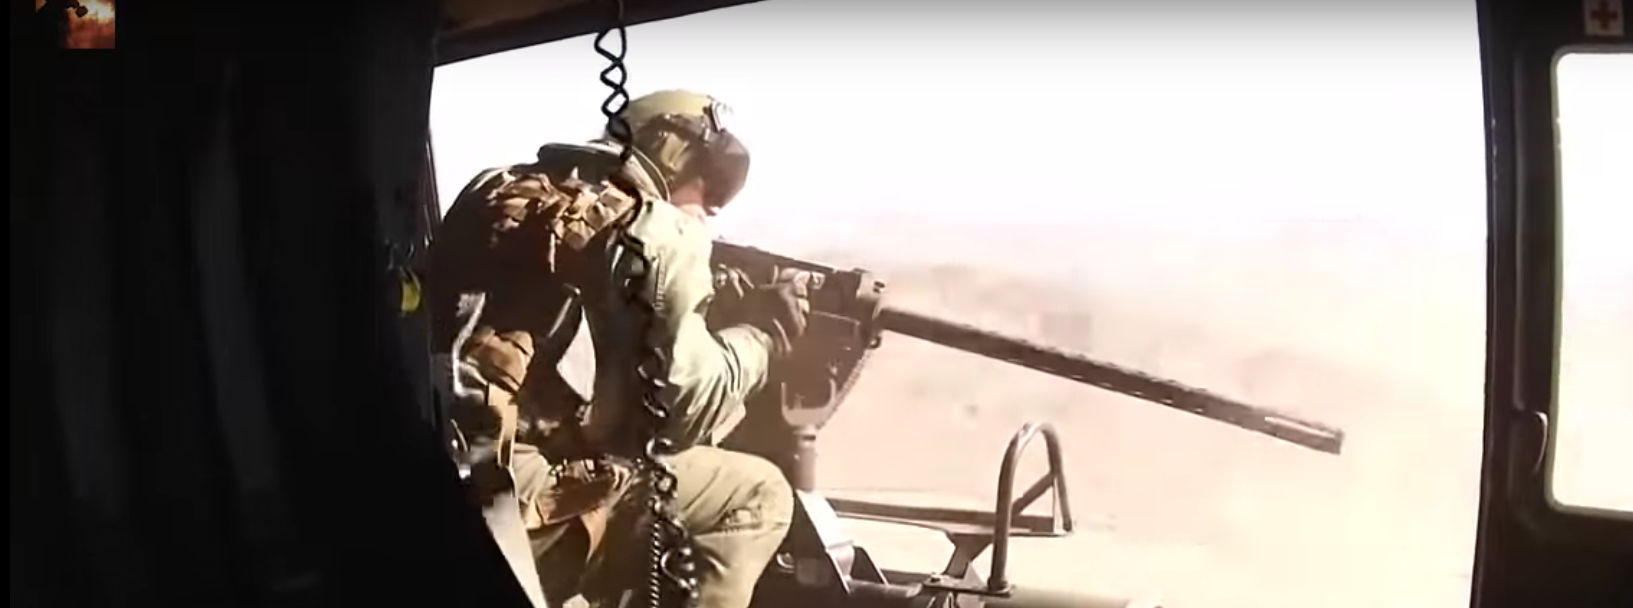 HD Combat Footage From Afghanistan: Door Gunners Engage In Heavy Firefight Featured